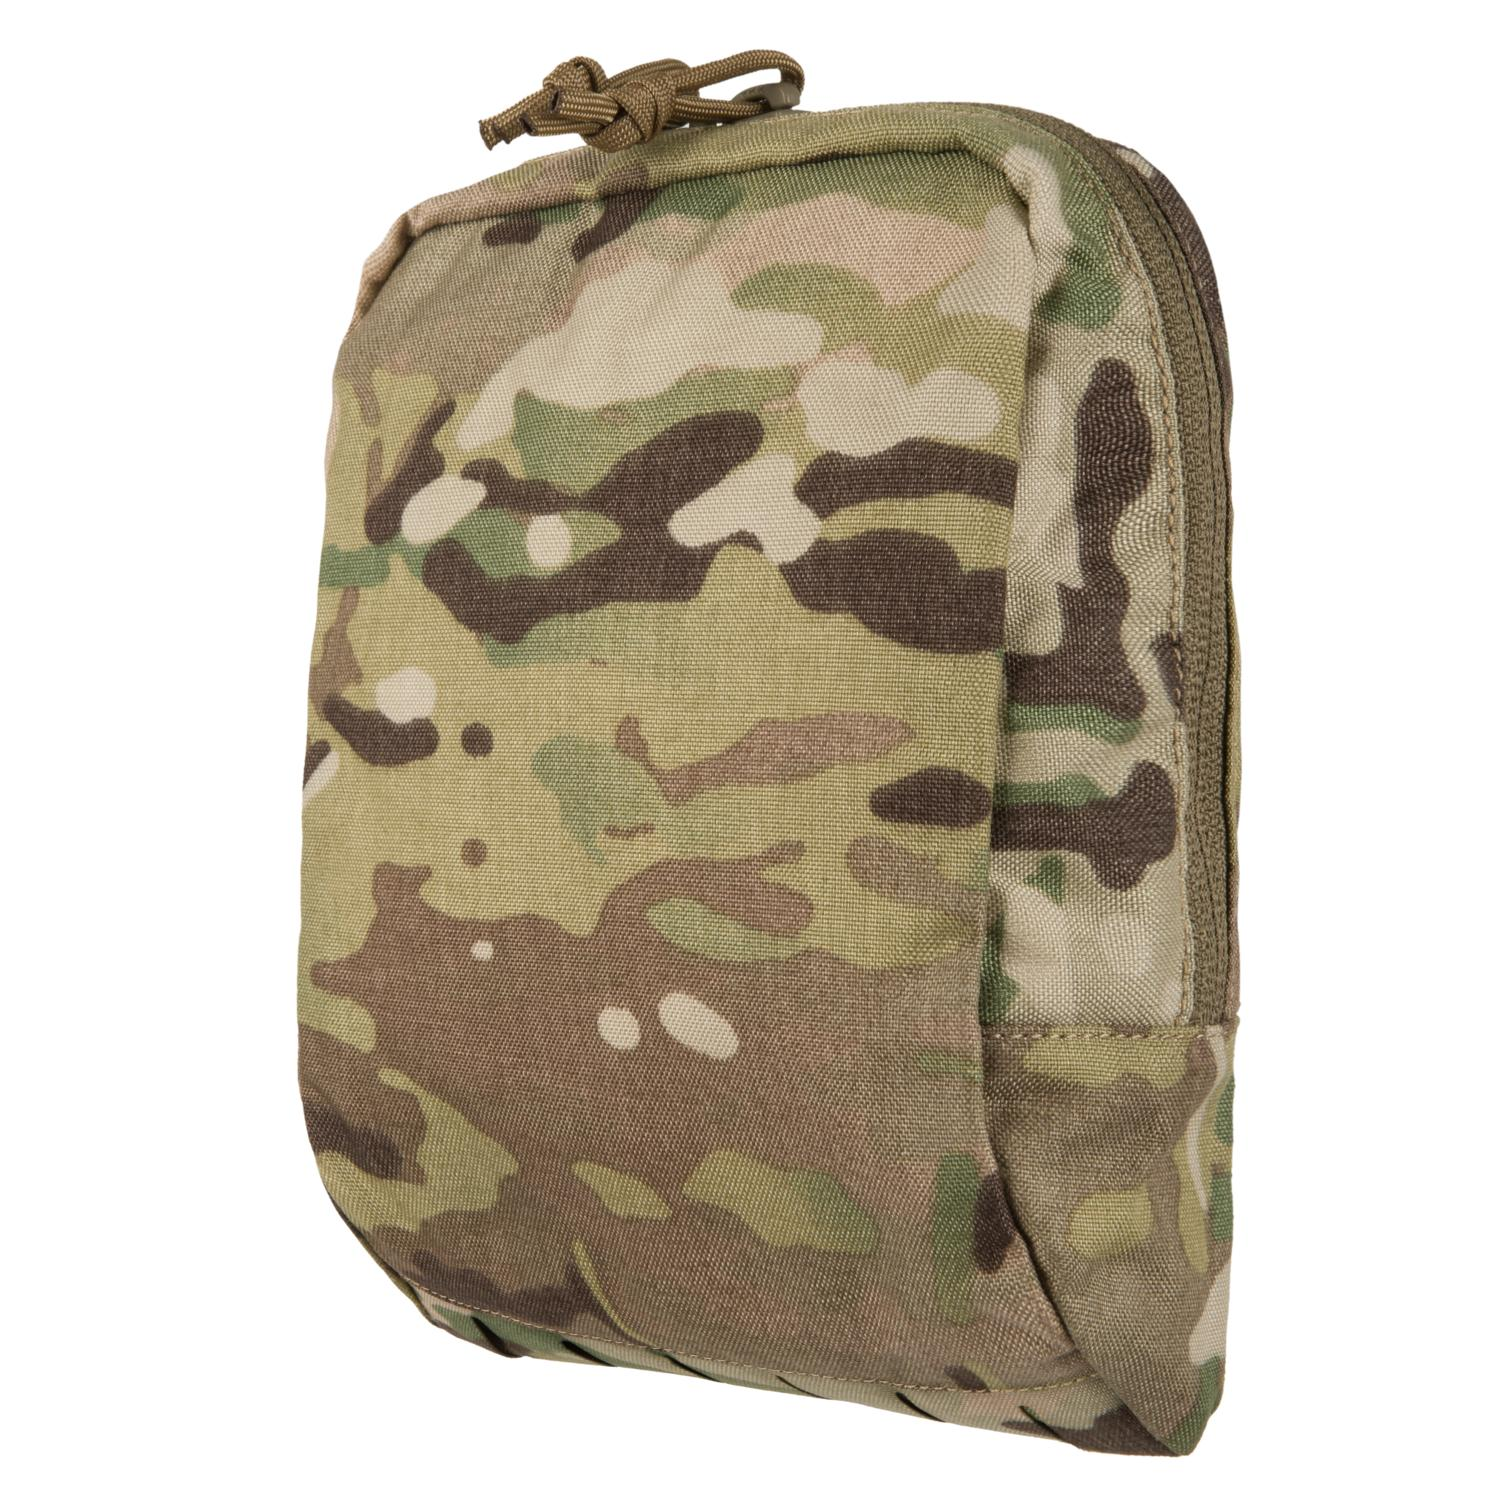 UTILITY POUCH - Large